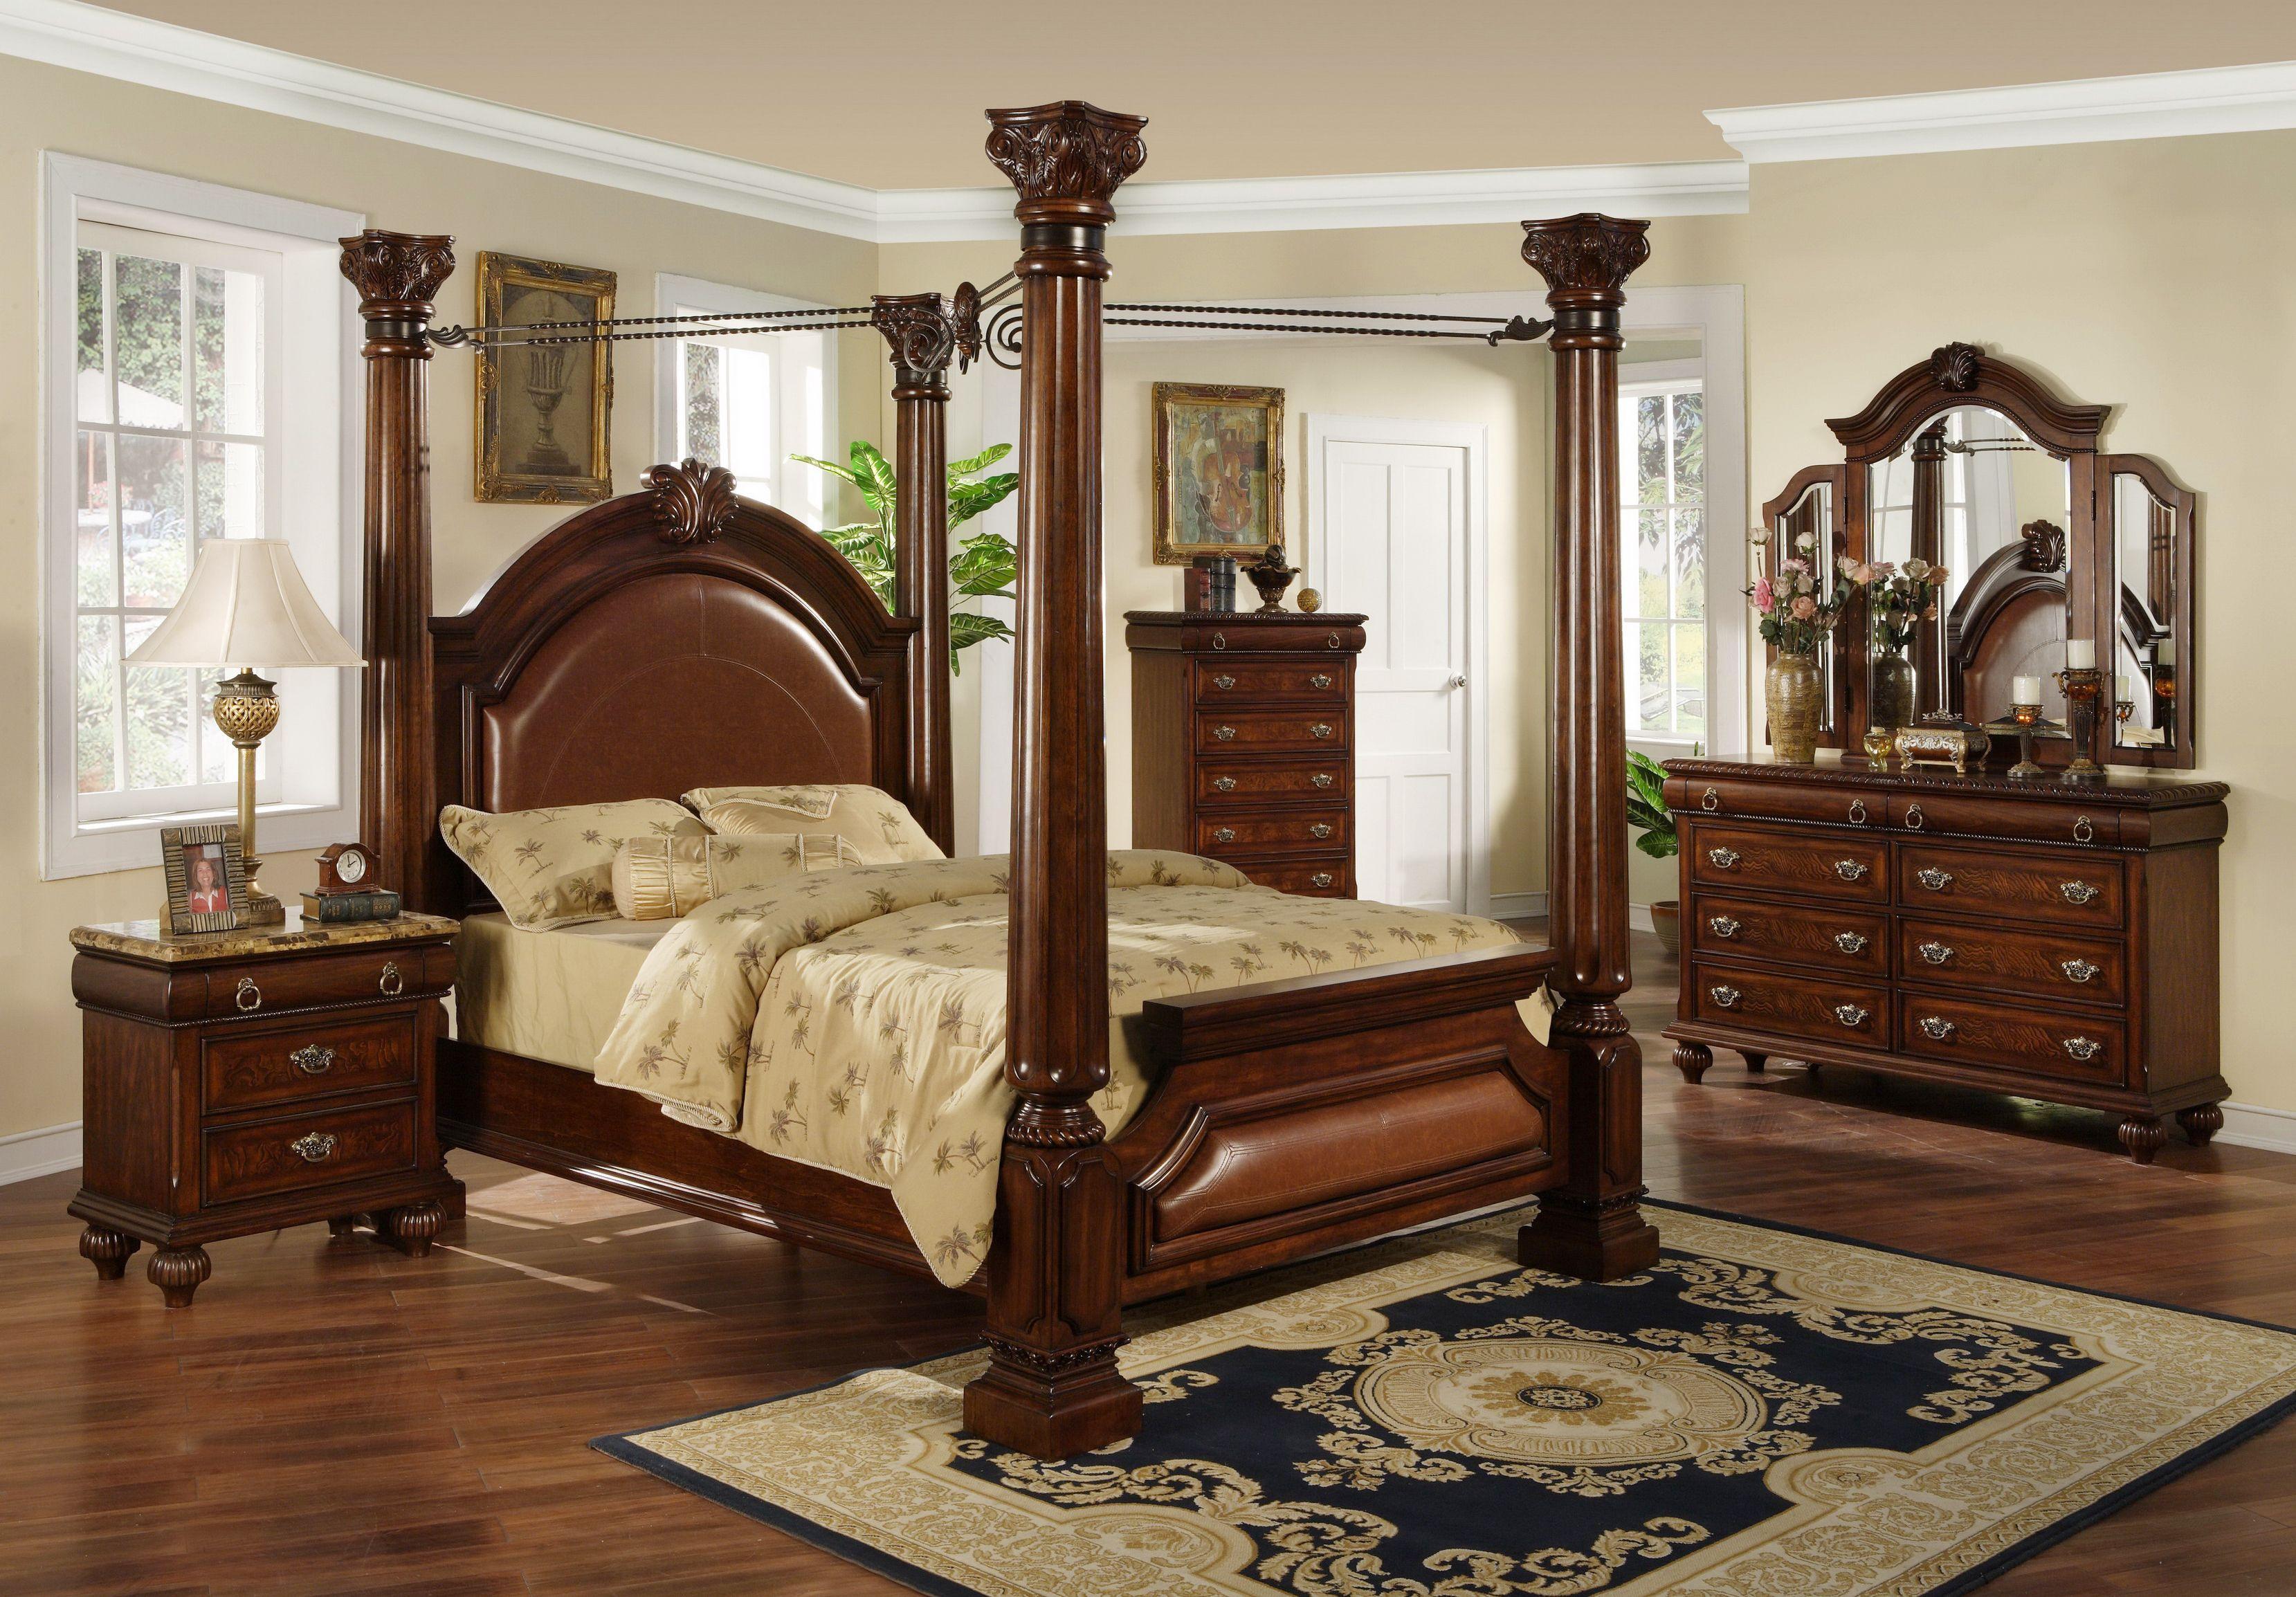 10+ images about bedroom sets on pinterest | master bedrooms